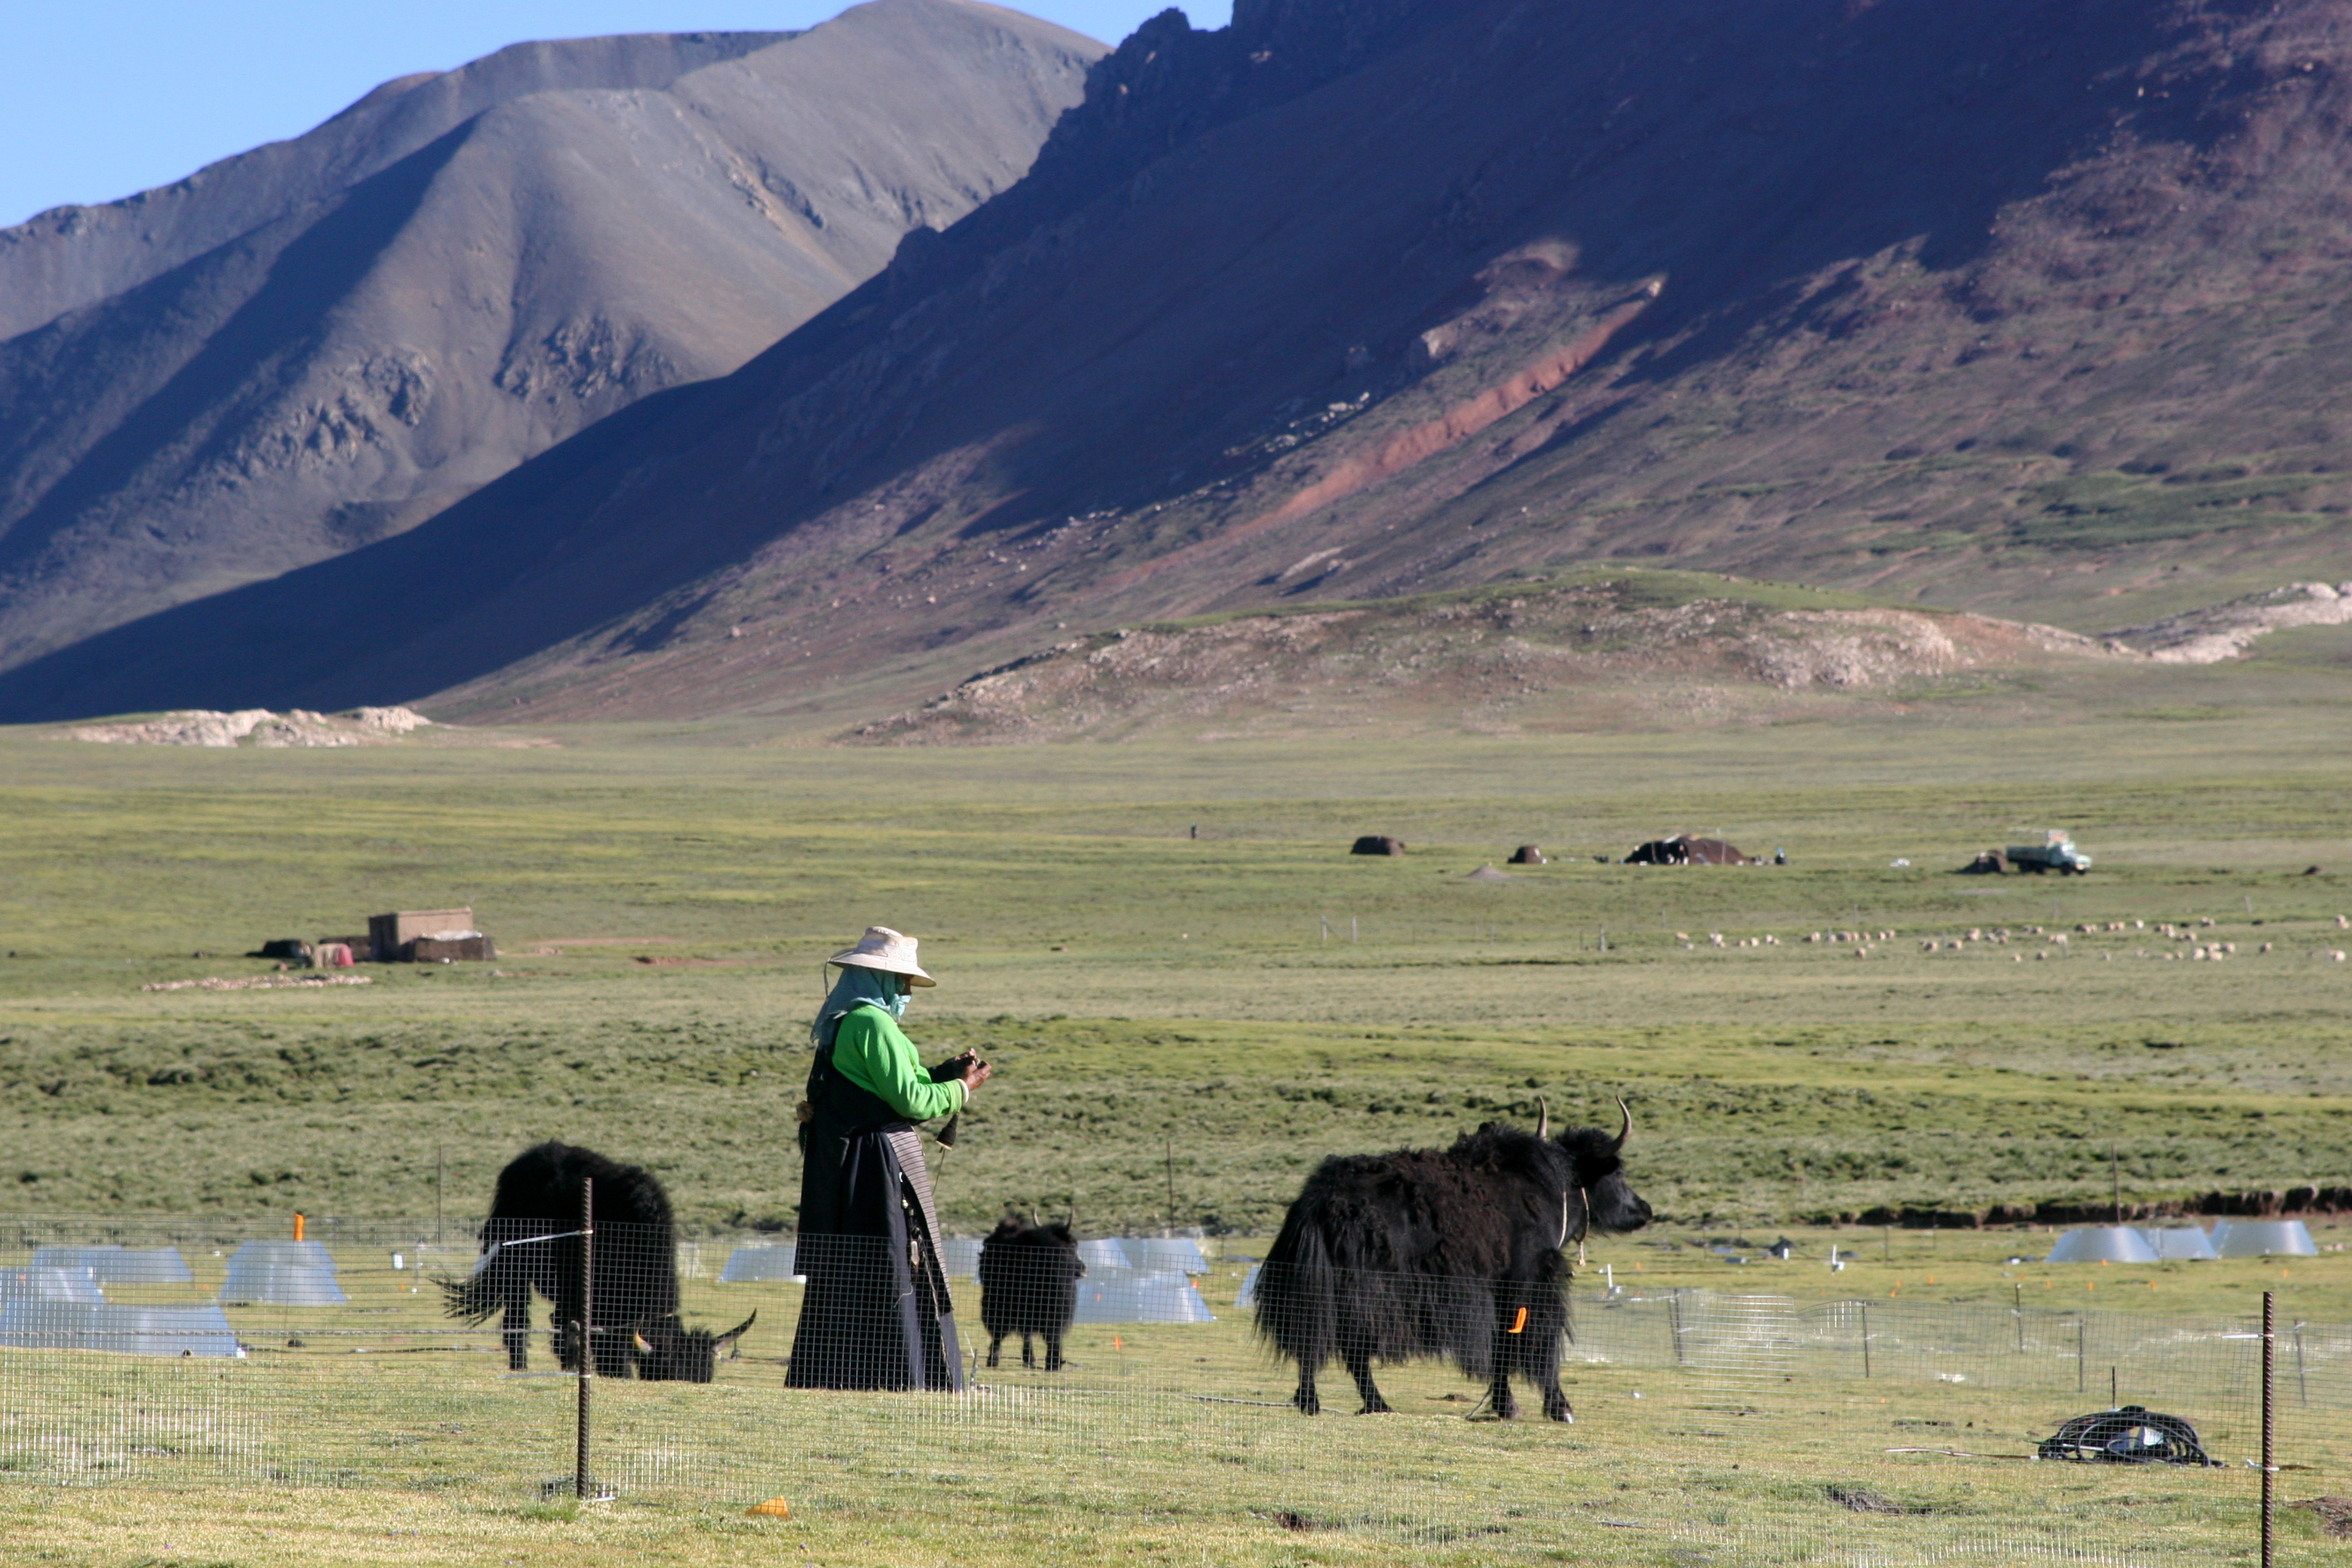 The Tibetan lifestyle may be severely affected future climate changes ...